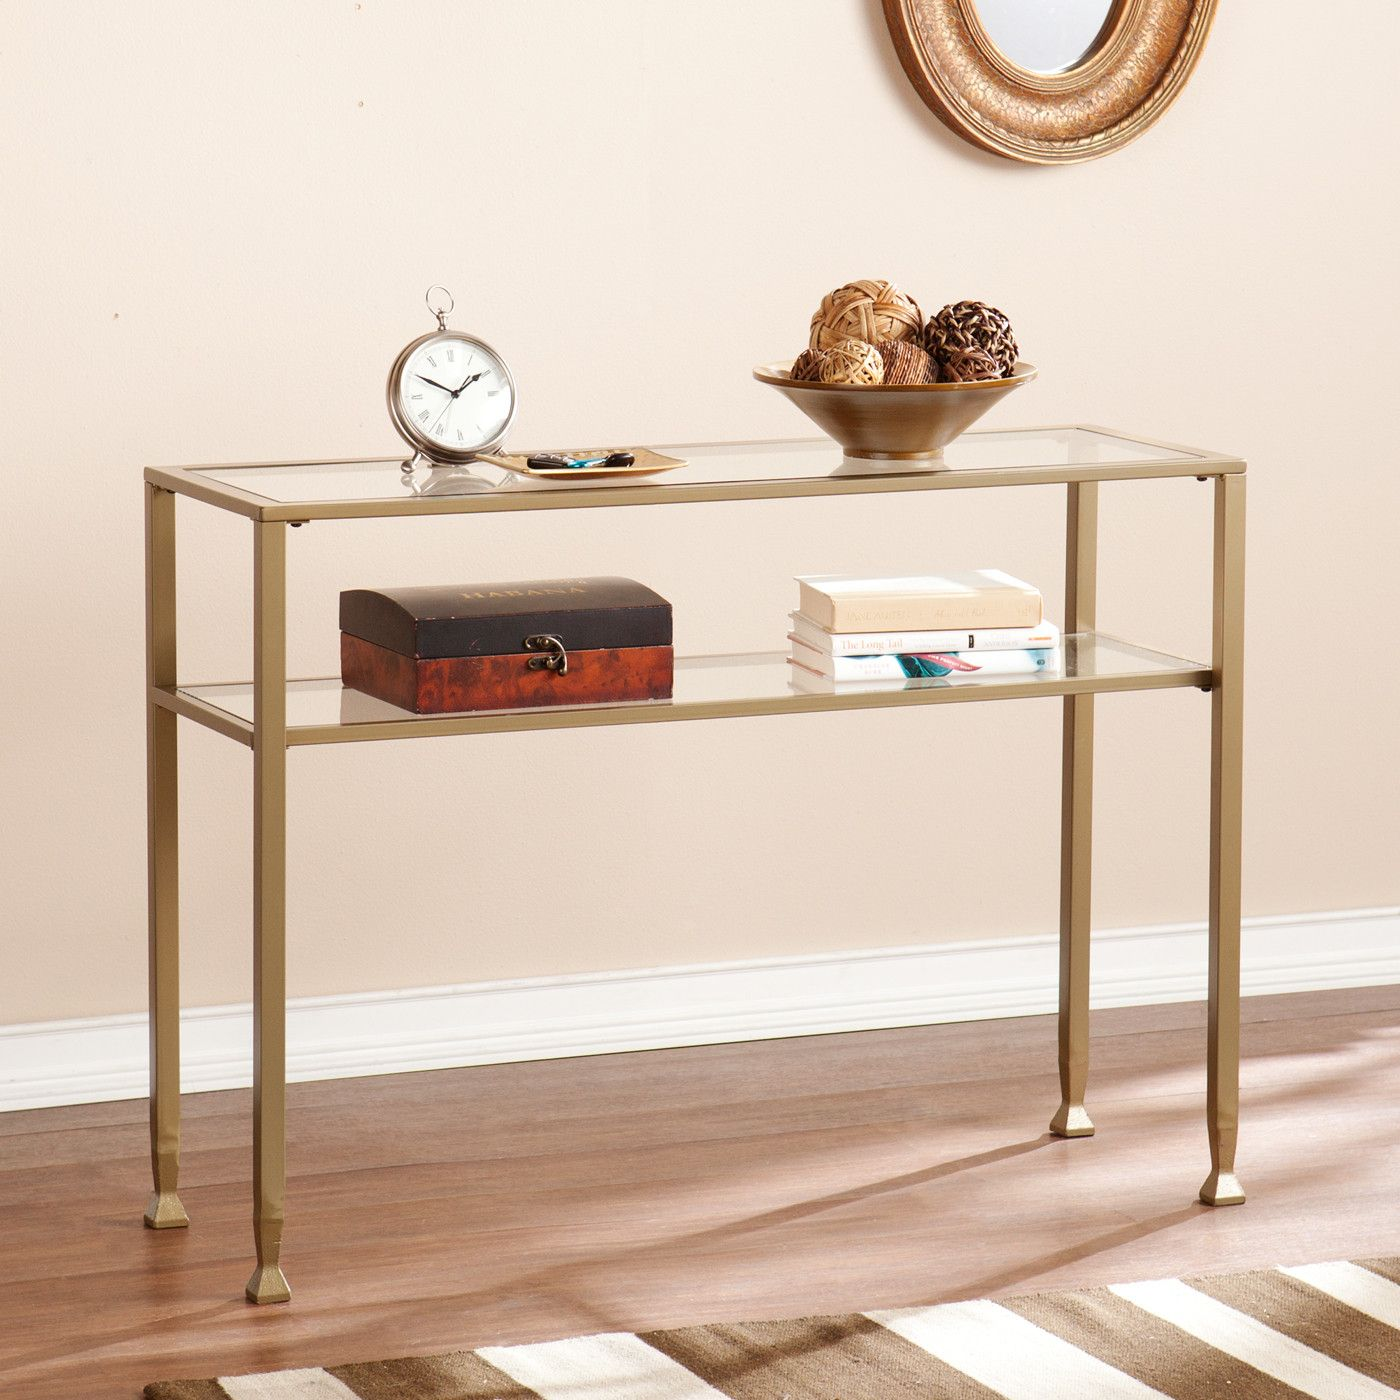 Glass Sofa Table Decor Gold Metal And Glass Console Table Doces Abobrinhas Console